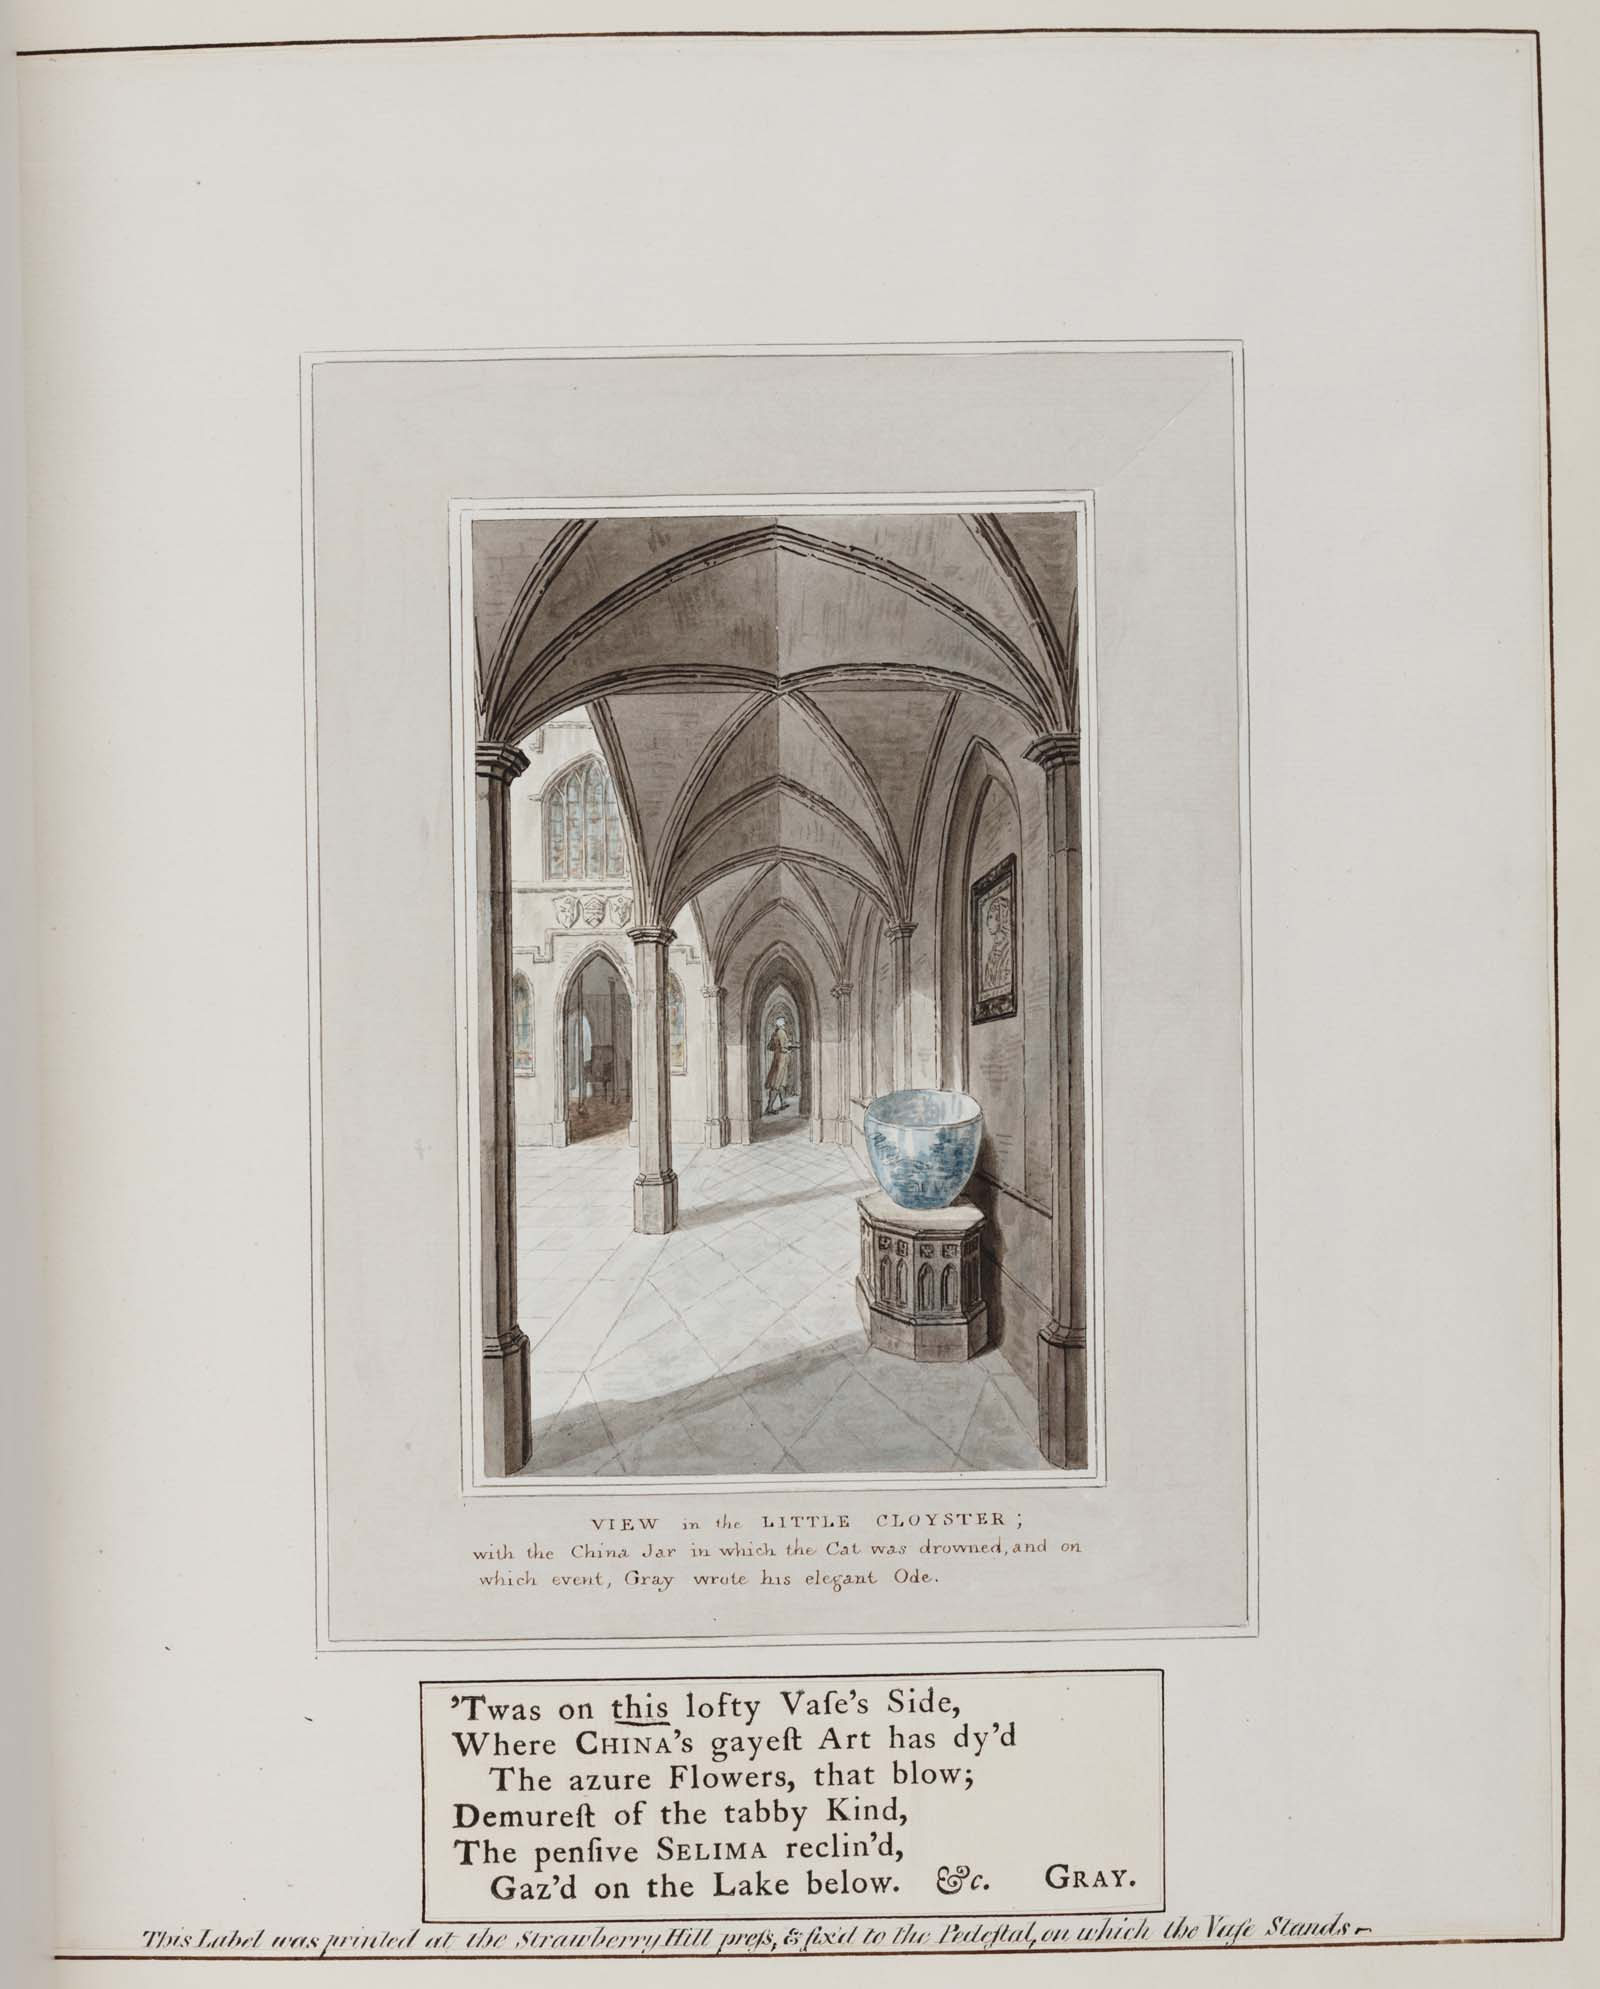 engraved illustration showing a cloistered hallway with large pot on a plinth